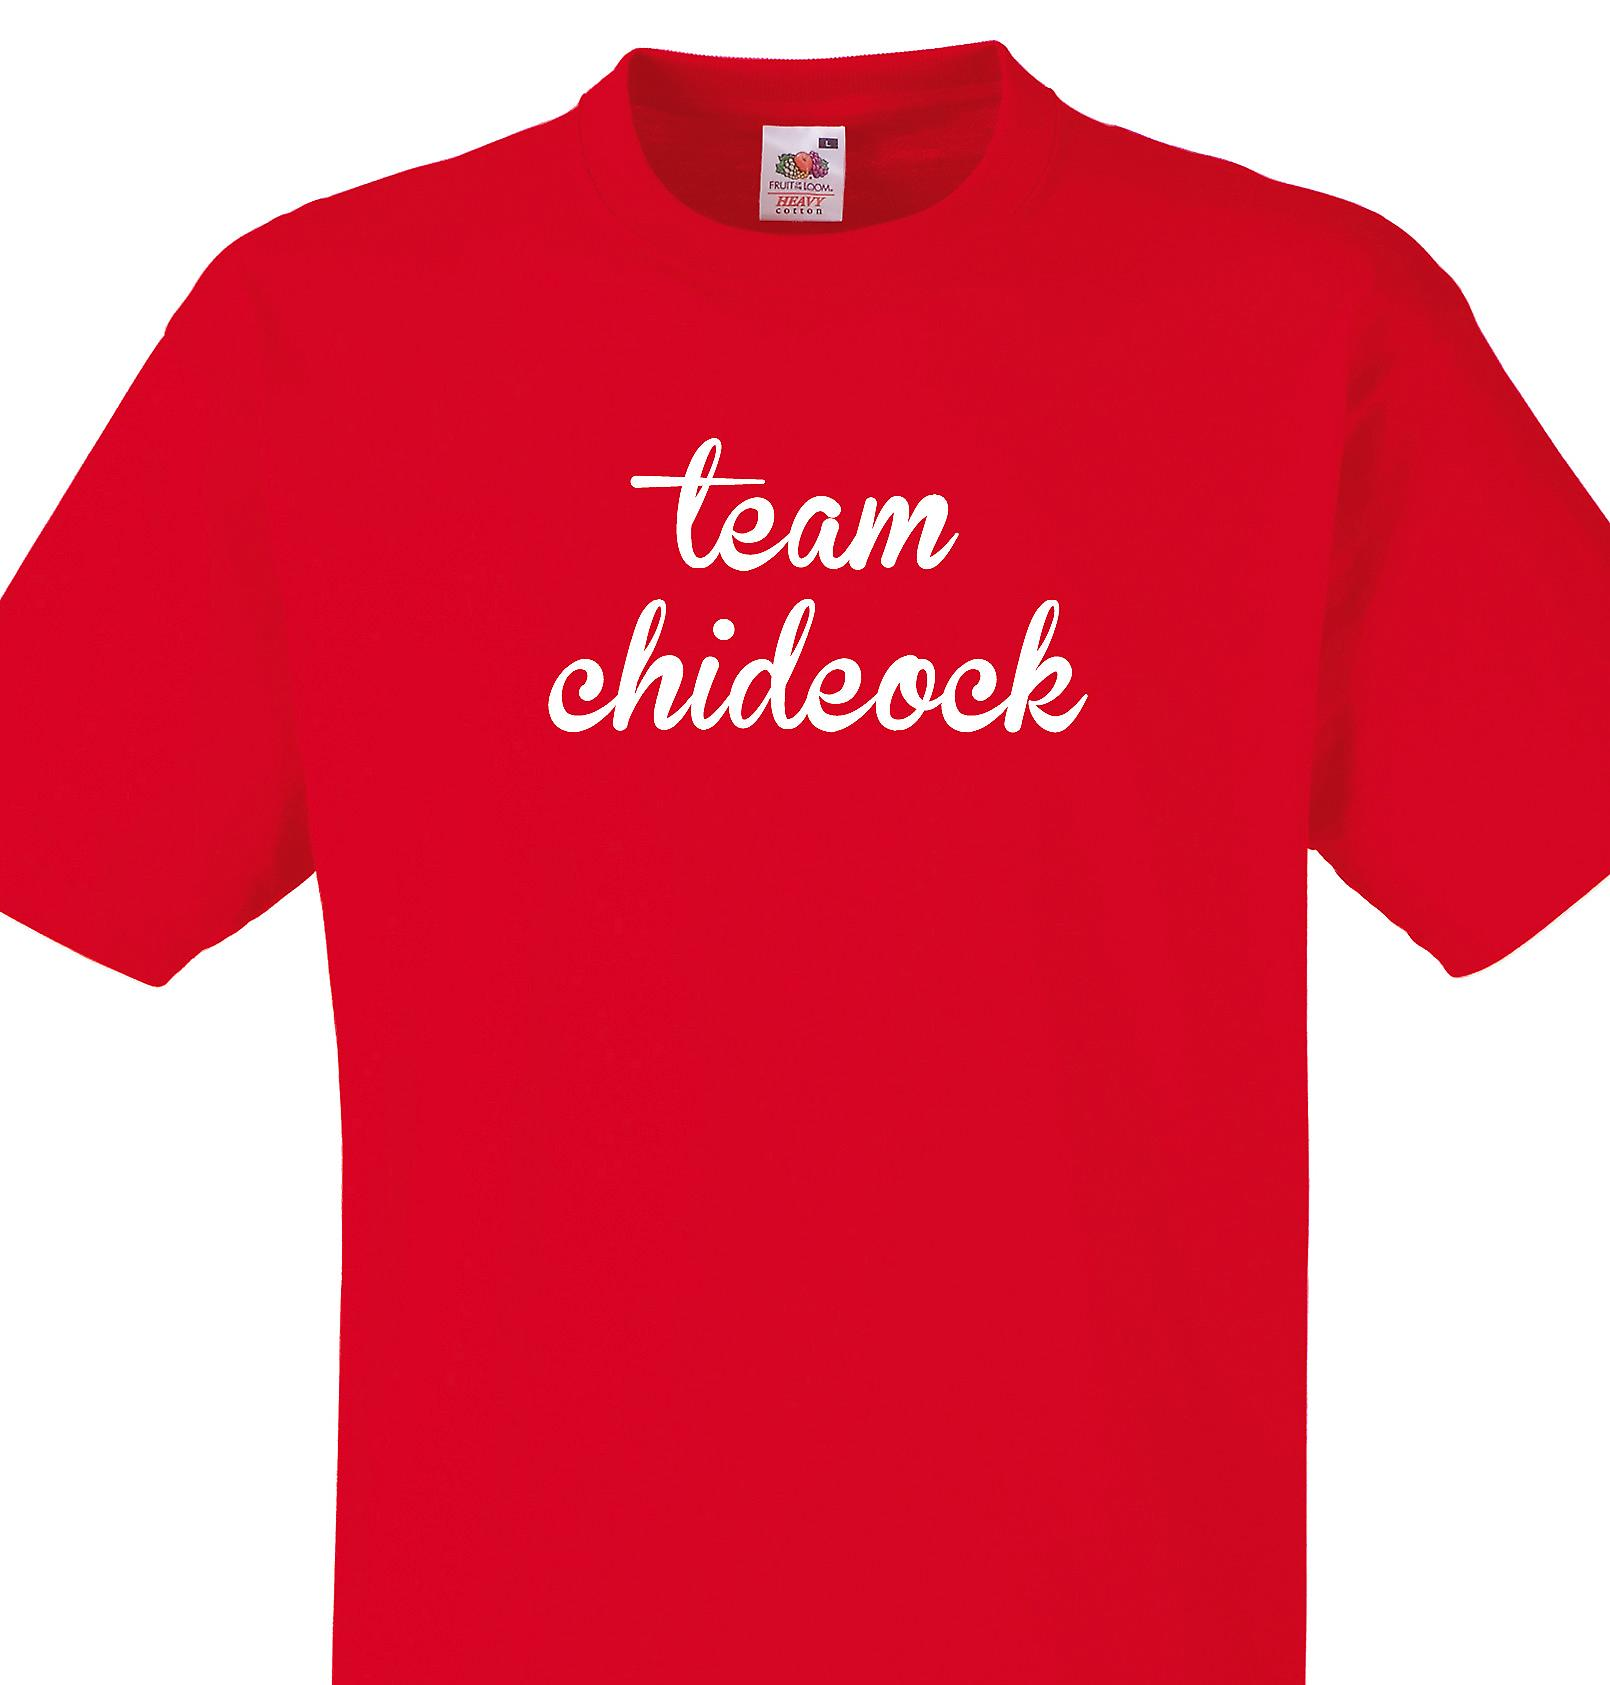 Team Chideock Red T shirt